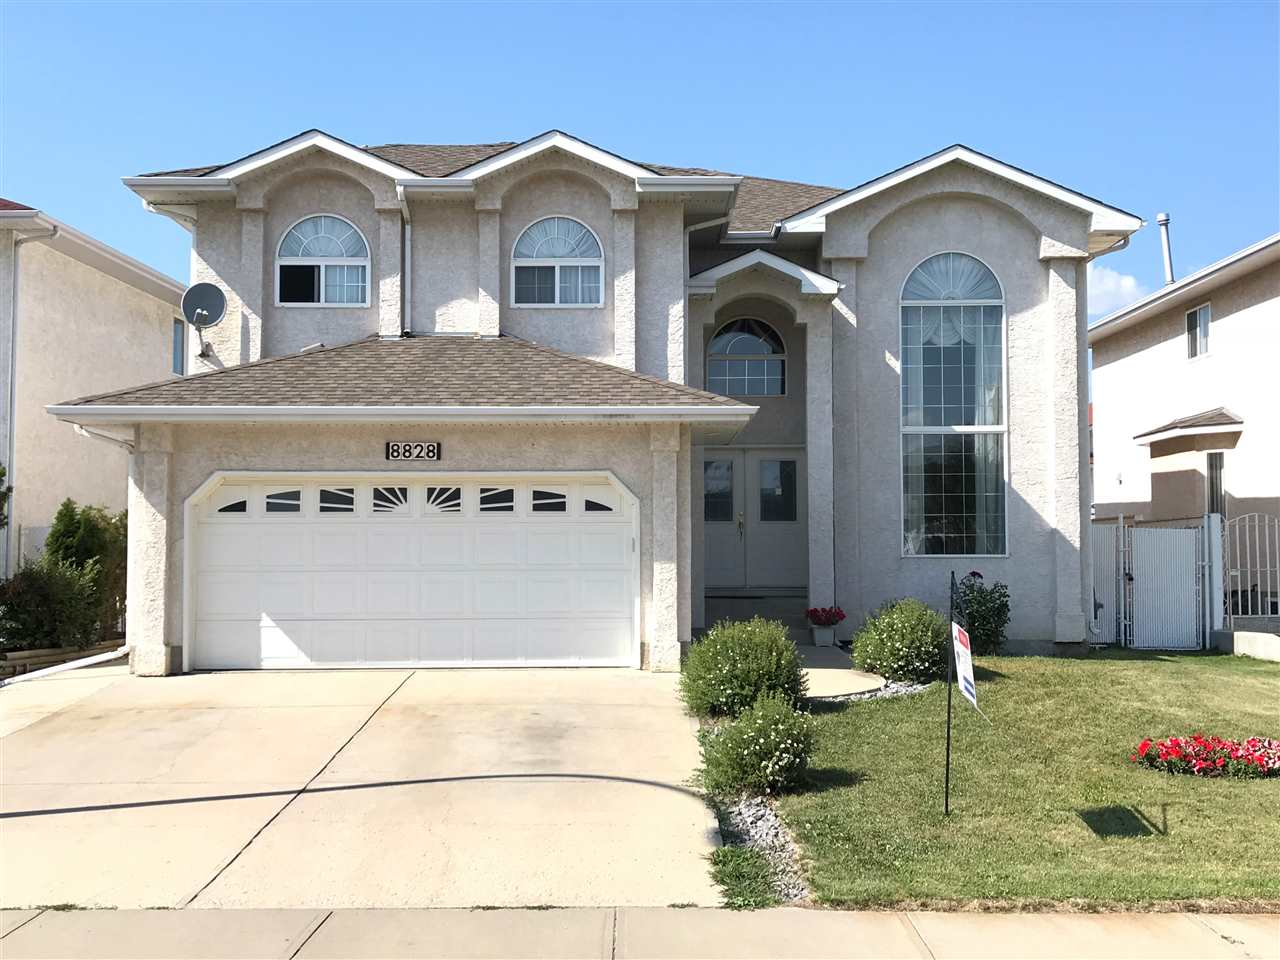 8828 159A Avenue, 5 bed, 4 bath, at $529,900